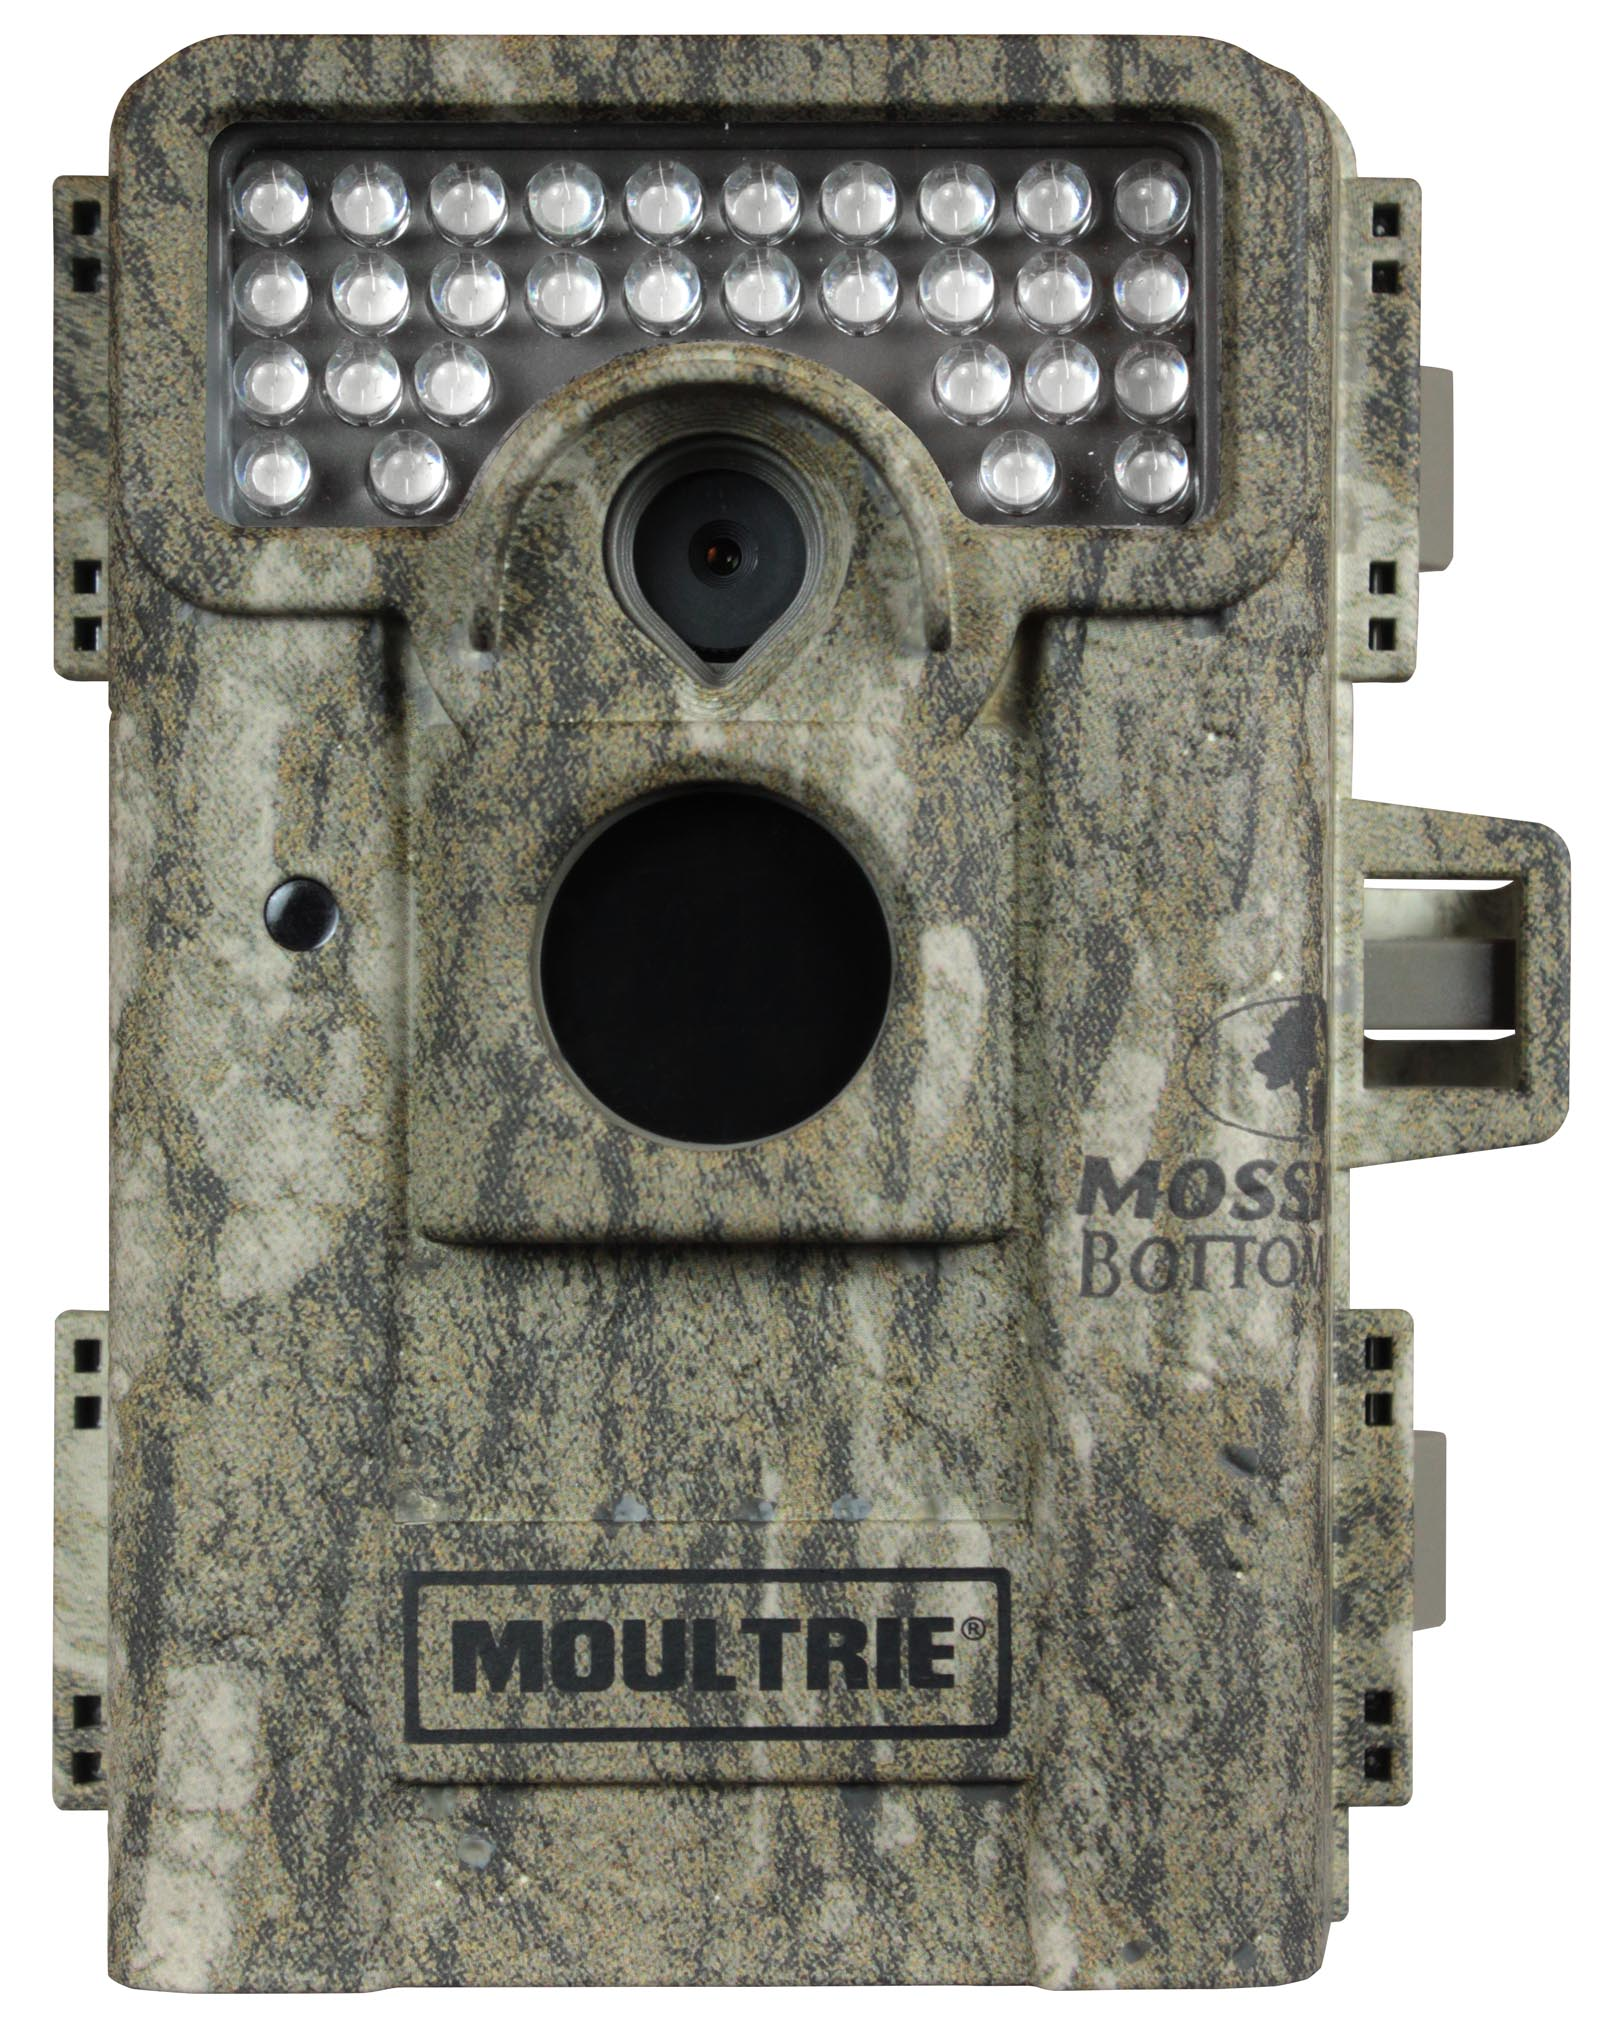 4 x MCG-M880-2�Moultrie M-880 Game Spy Low-Glow Infrared Digital Mini Trail Cameras (8 MP) (4 Pack)